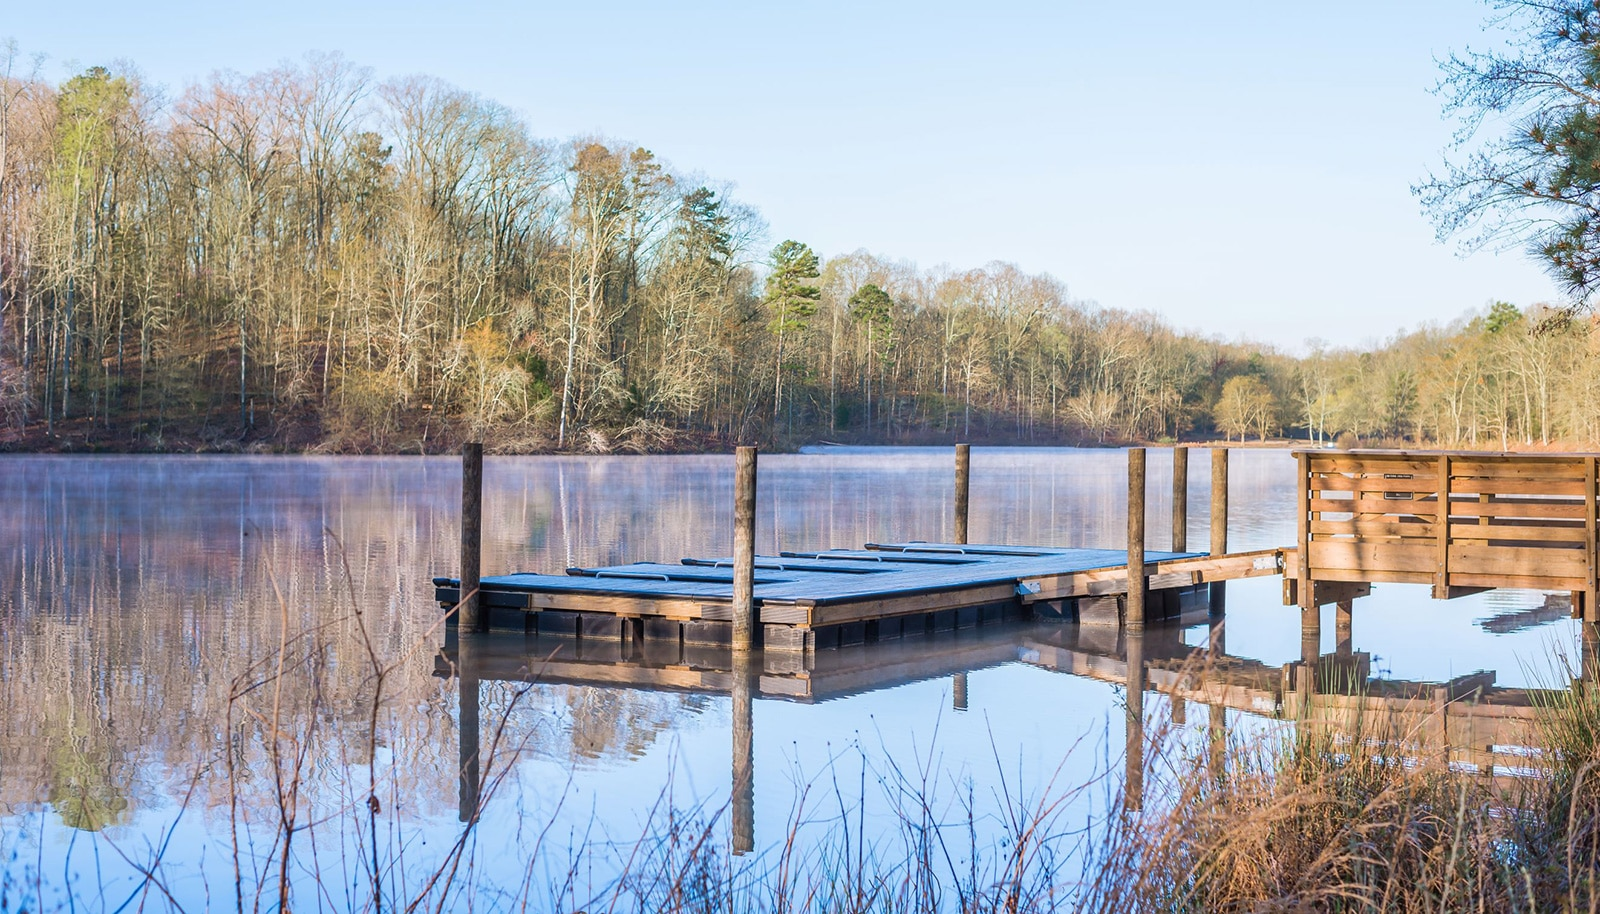 Dock and Lake Hagler